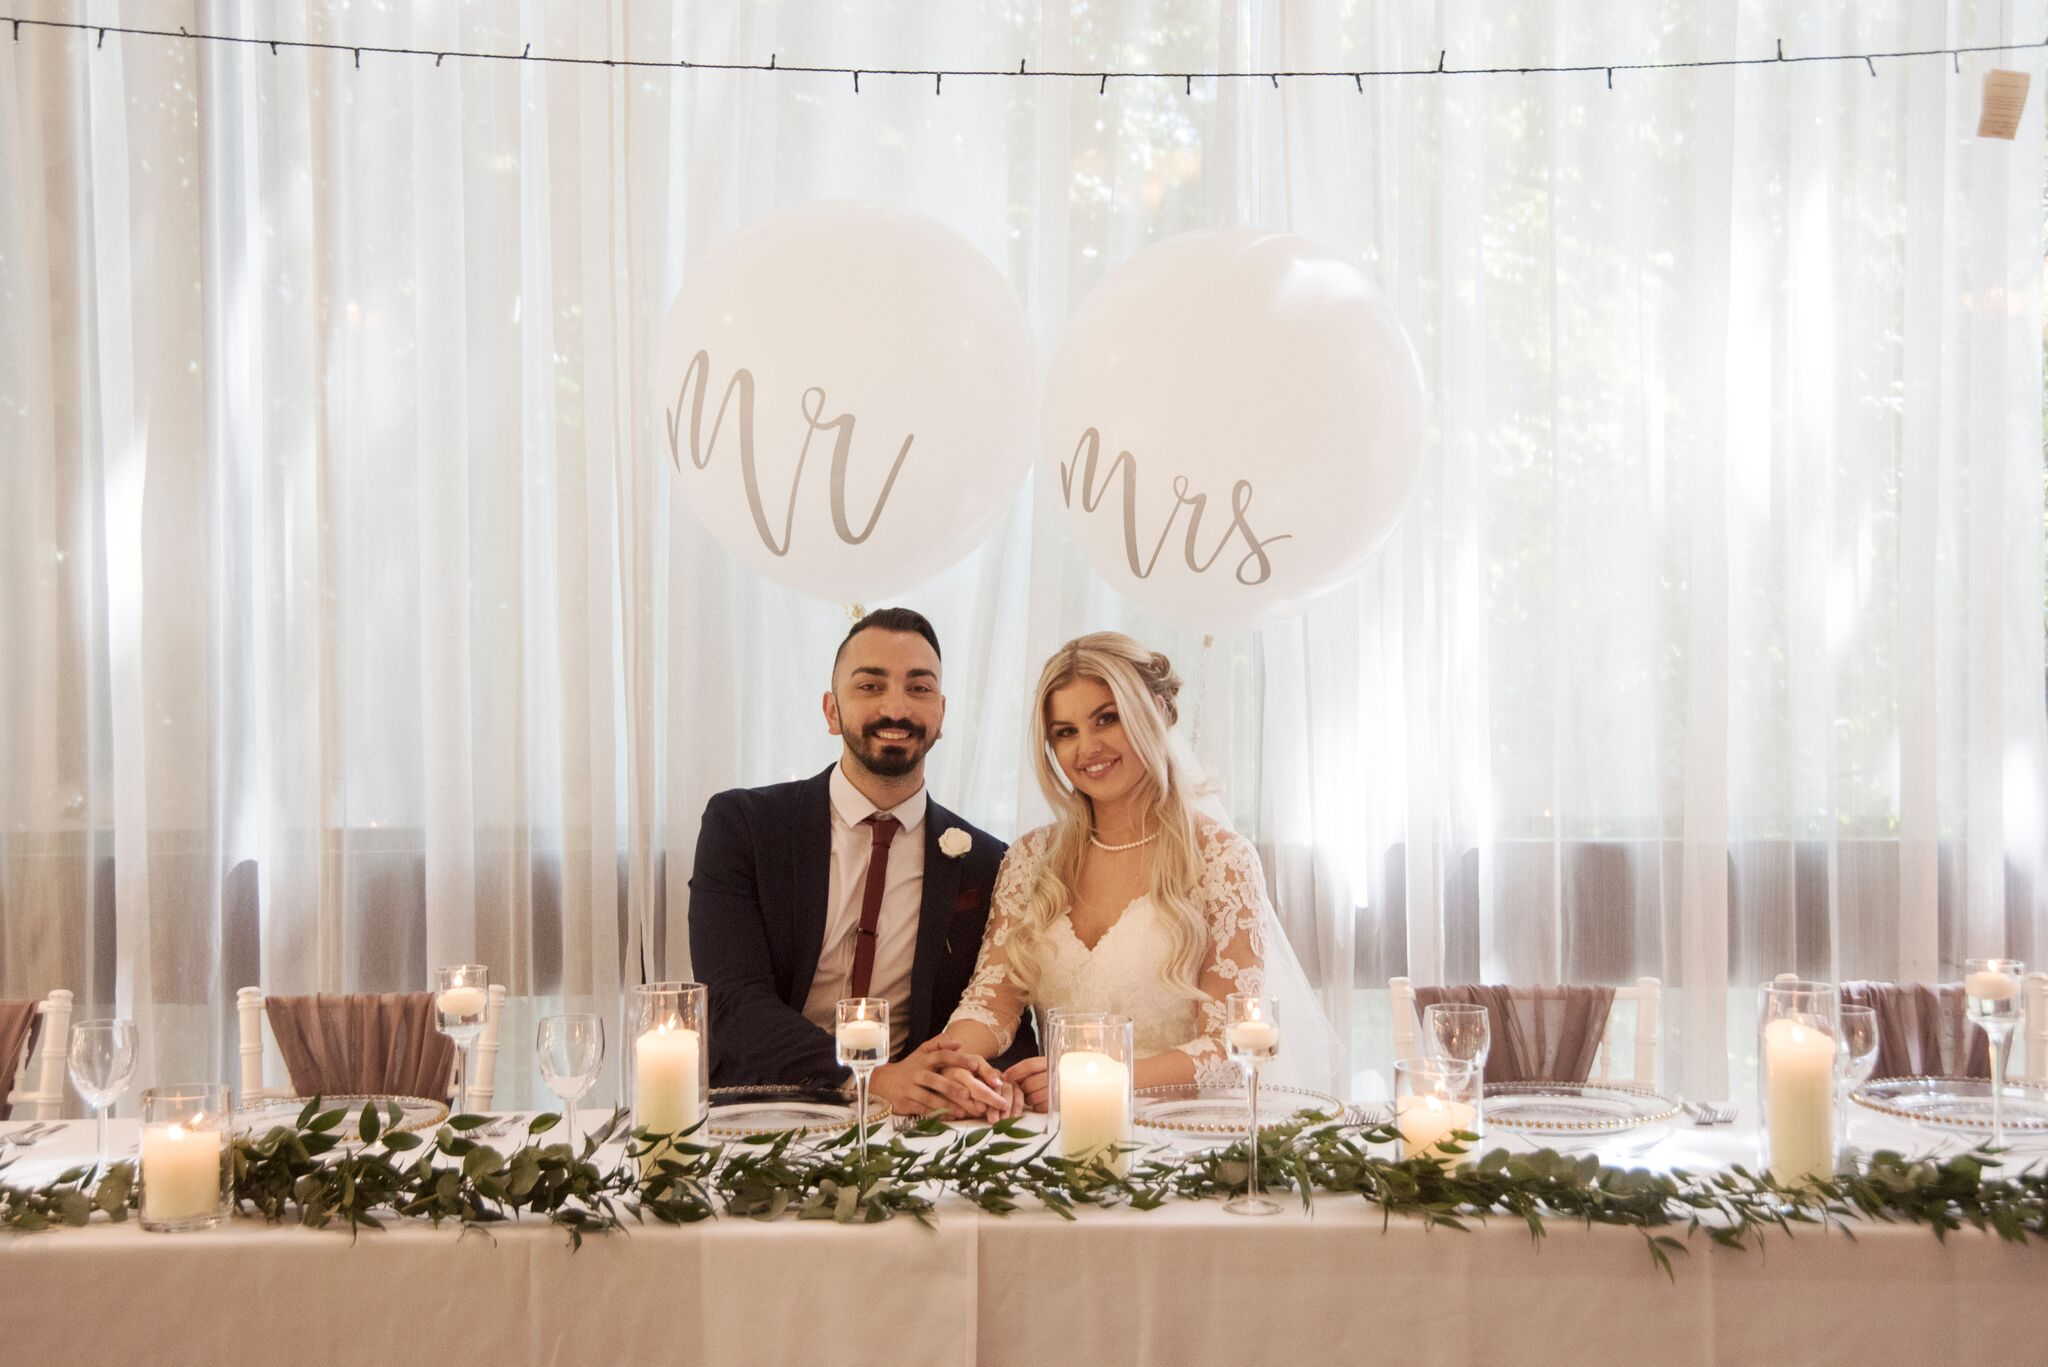 Mr & Mrs Balloons Photography - Adele Drummond Sophia's Final Touch - Venue Styling - Weddings